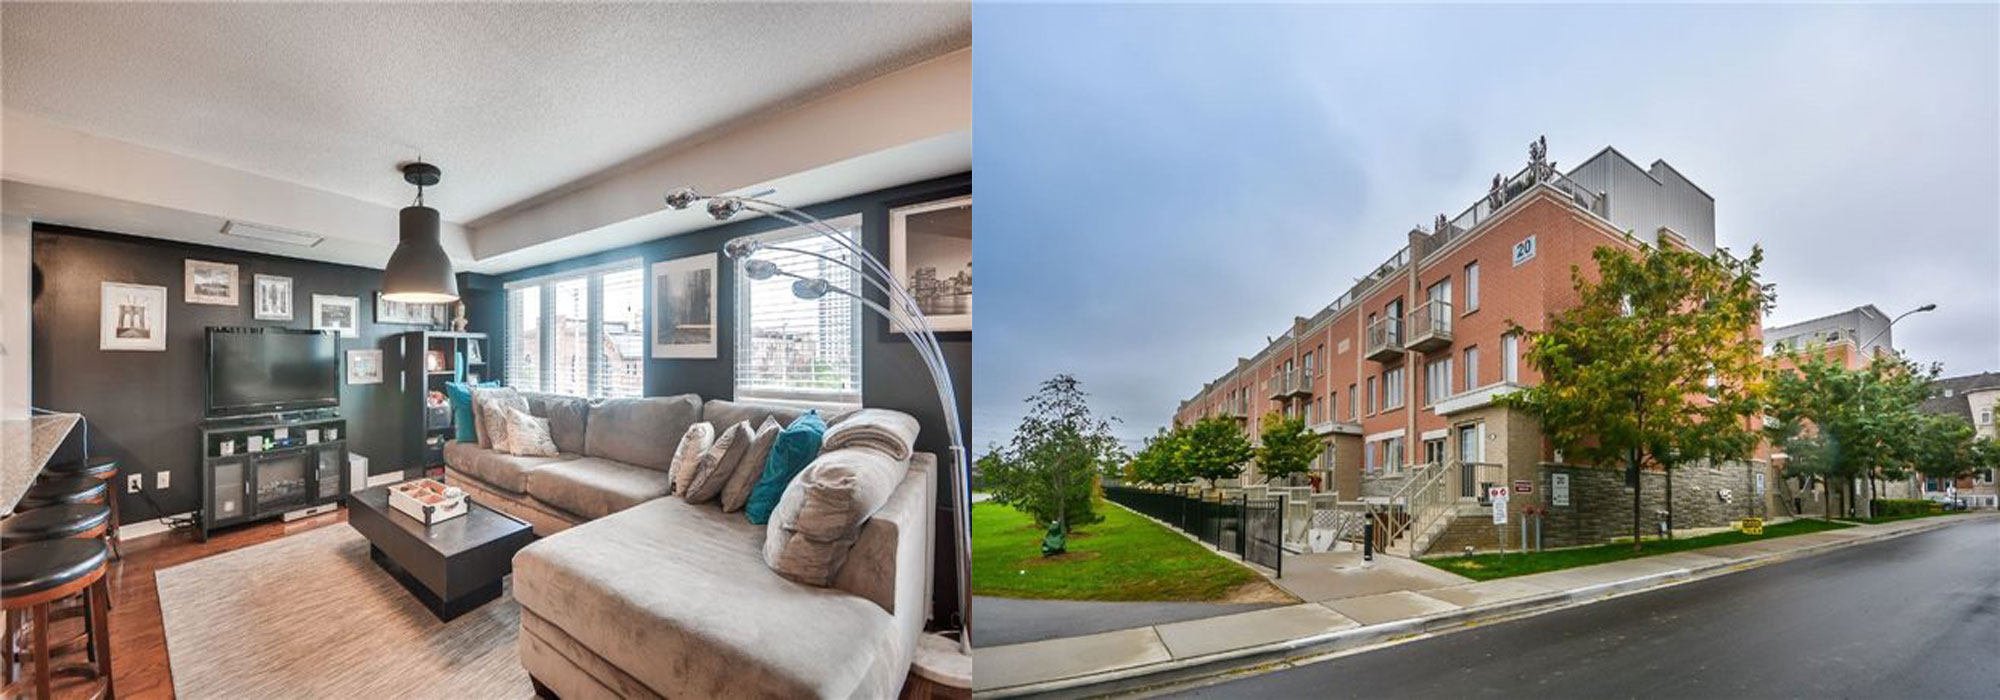 20 Foundry Ave 202